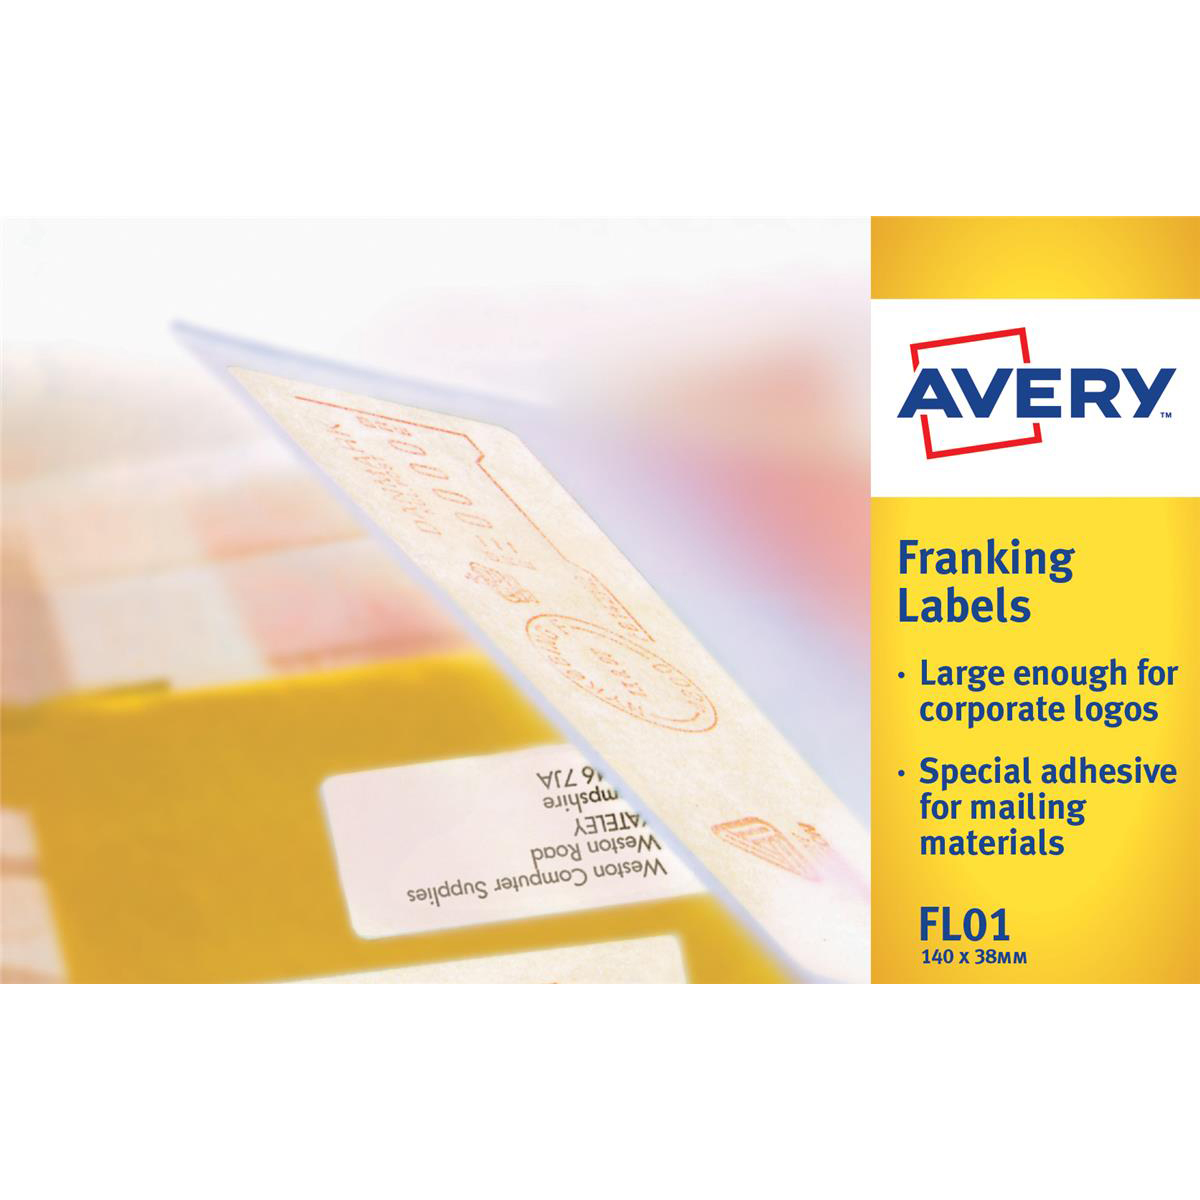 Avery Franking Labels 2 per sheet 140x38mm White Ref FL01 1000 Labels